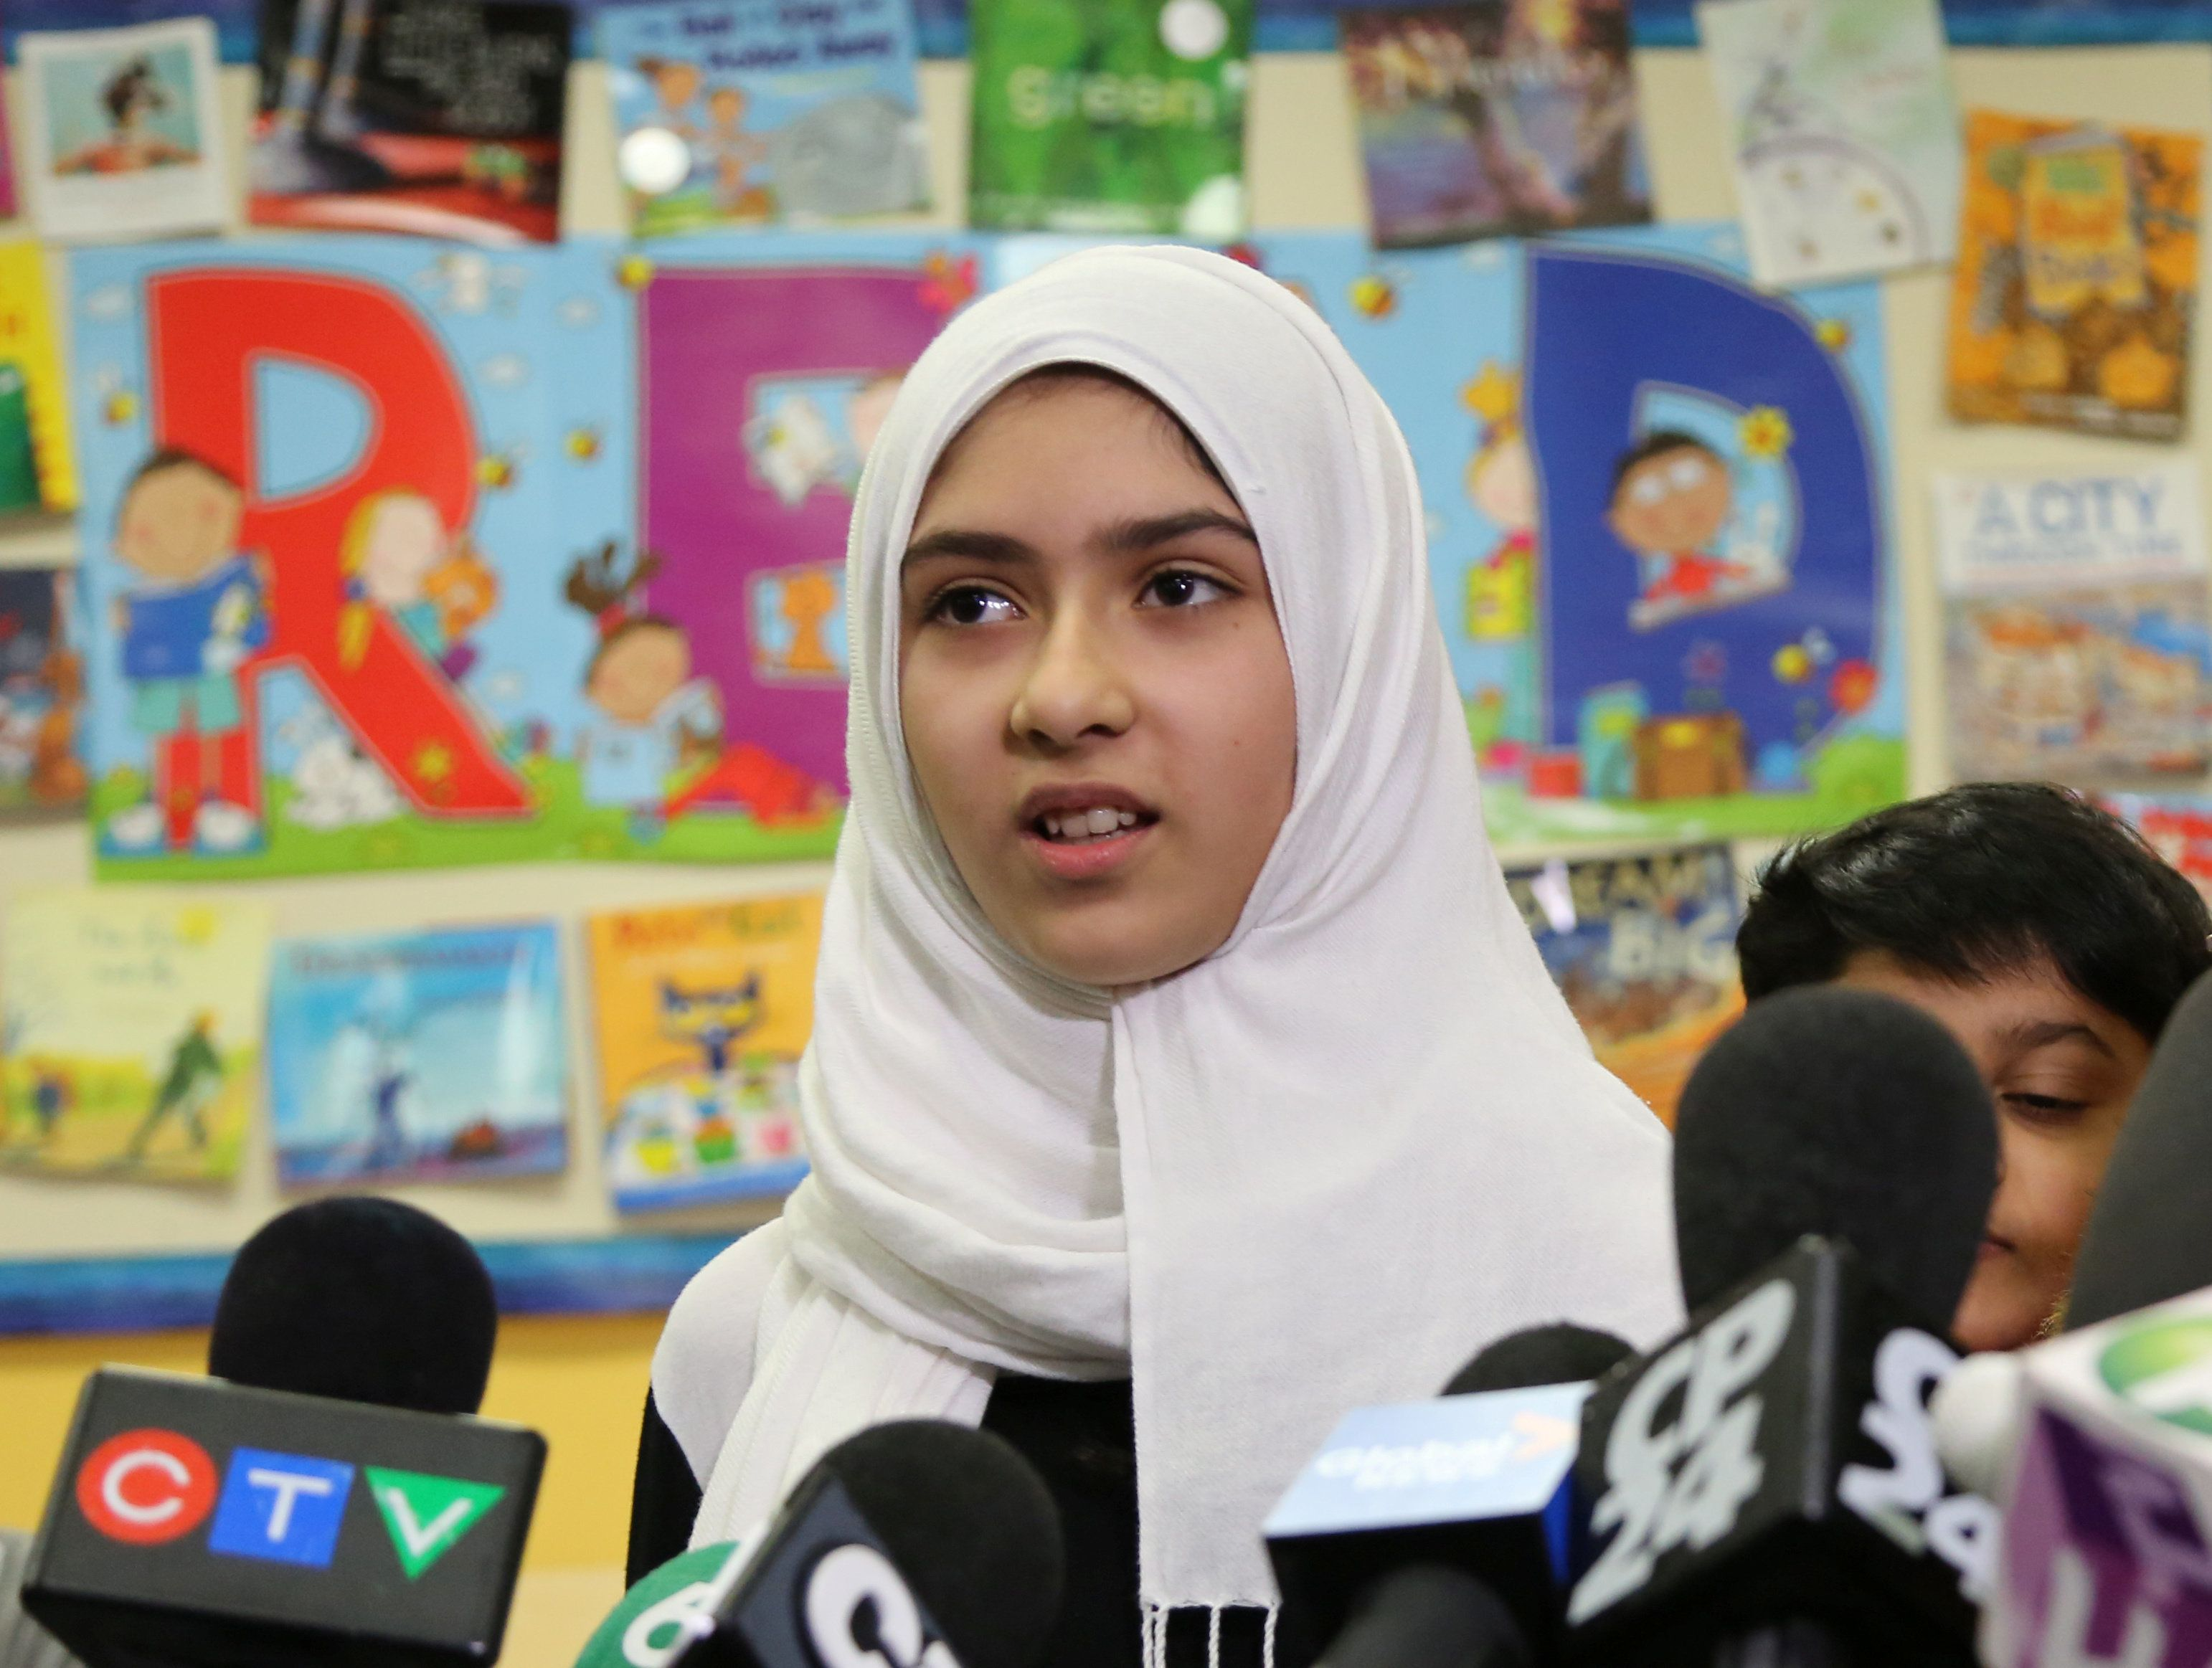 Canada schoolgirl attacked over hijab